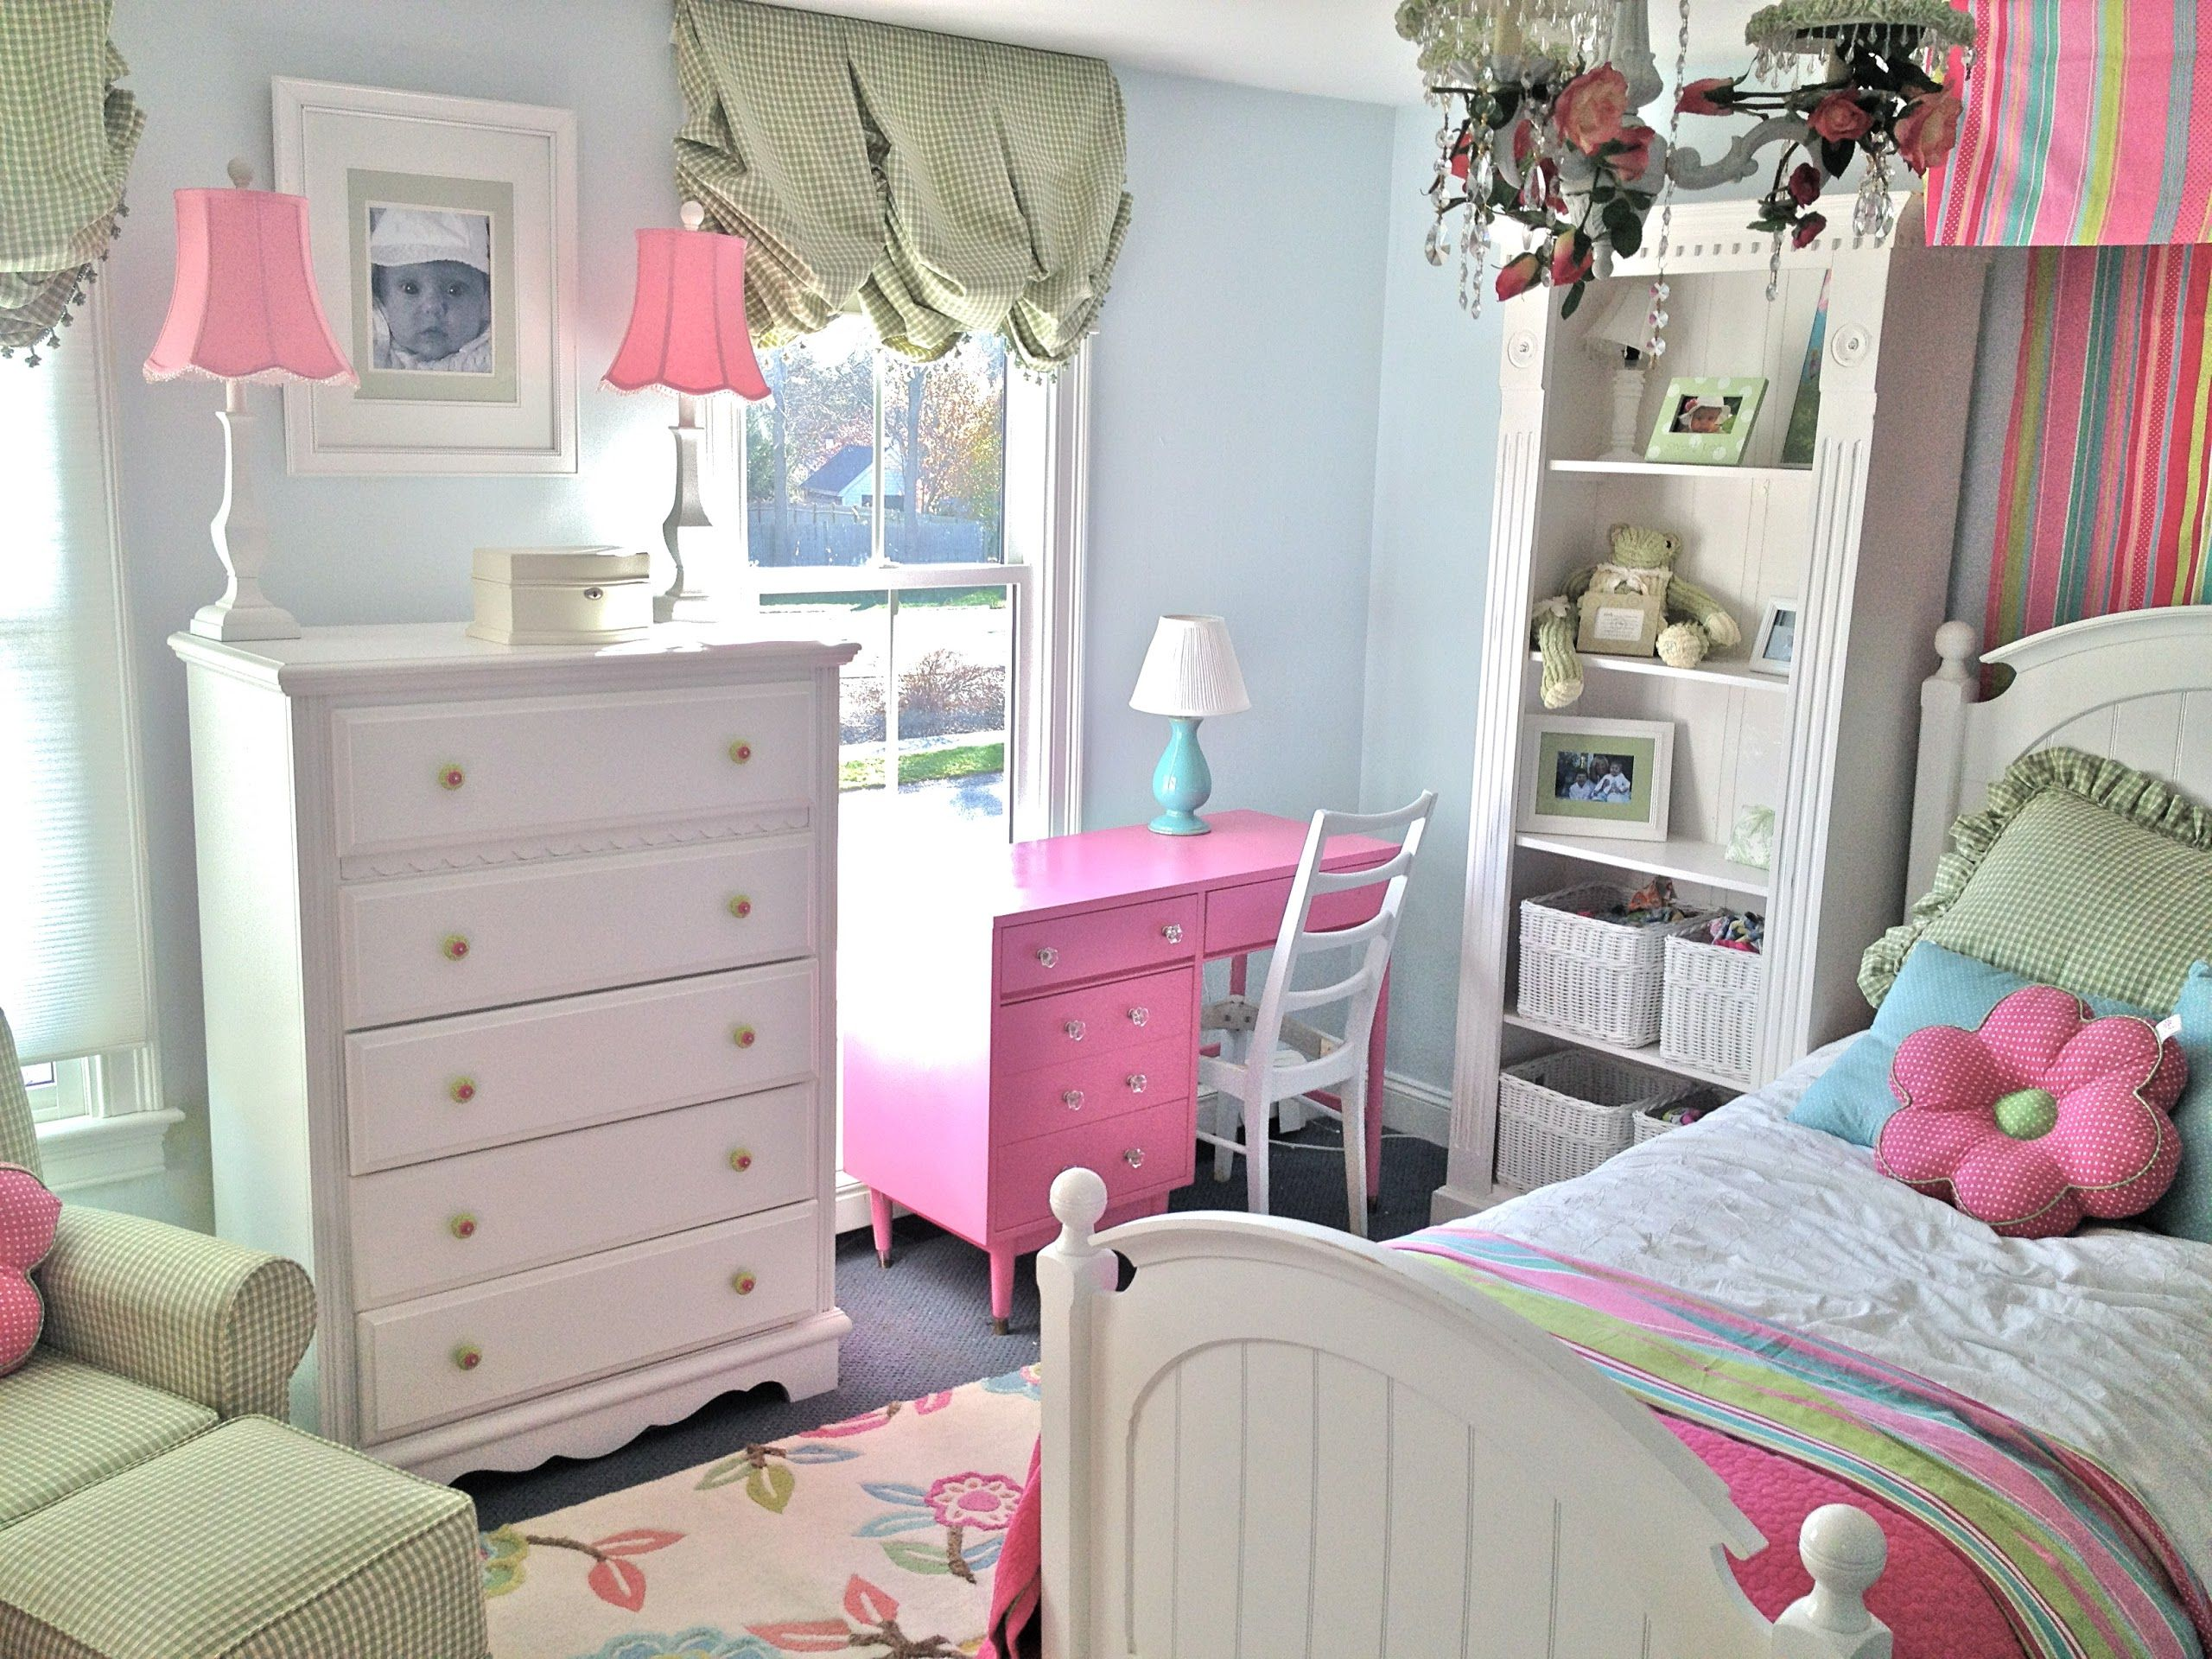 Best Shabby Chic Little Girls Rooms Images On Pinterest - Girl bedroom decor ideas